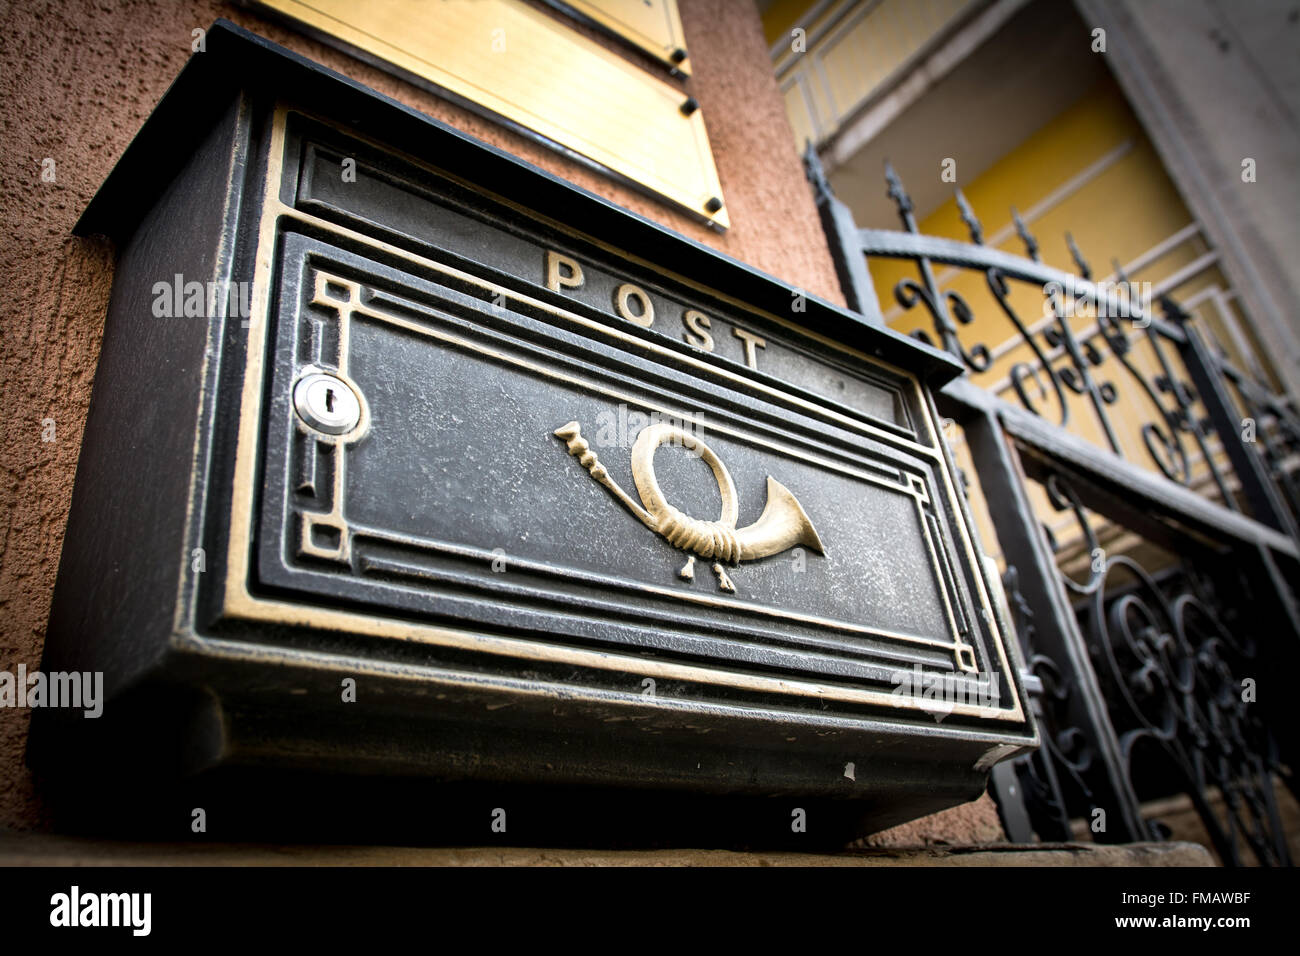 Black vintage mailbox with post written on it. - Stock Image